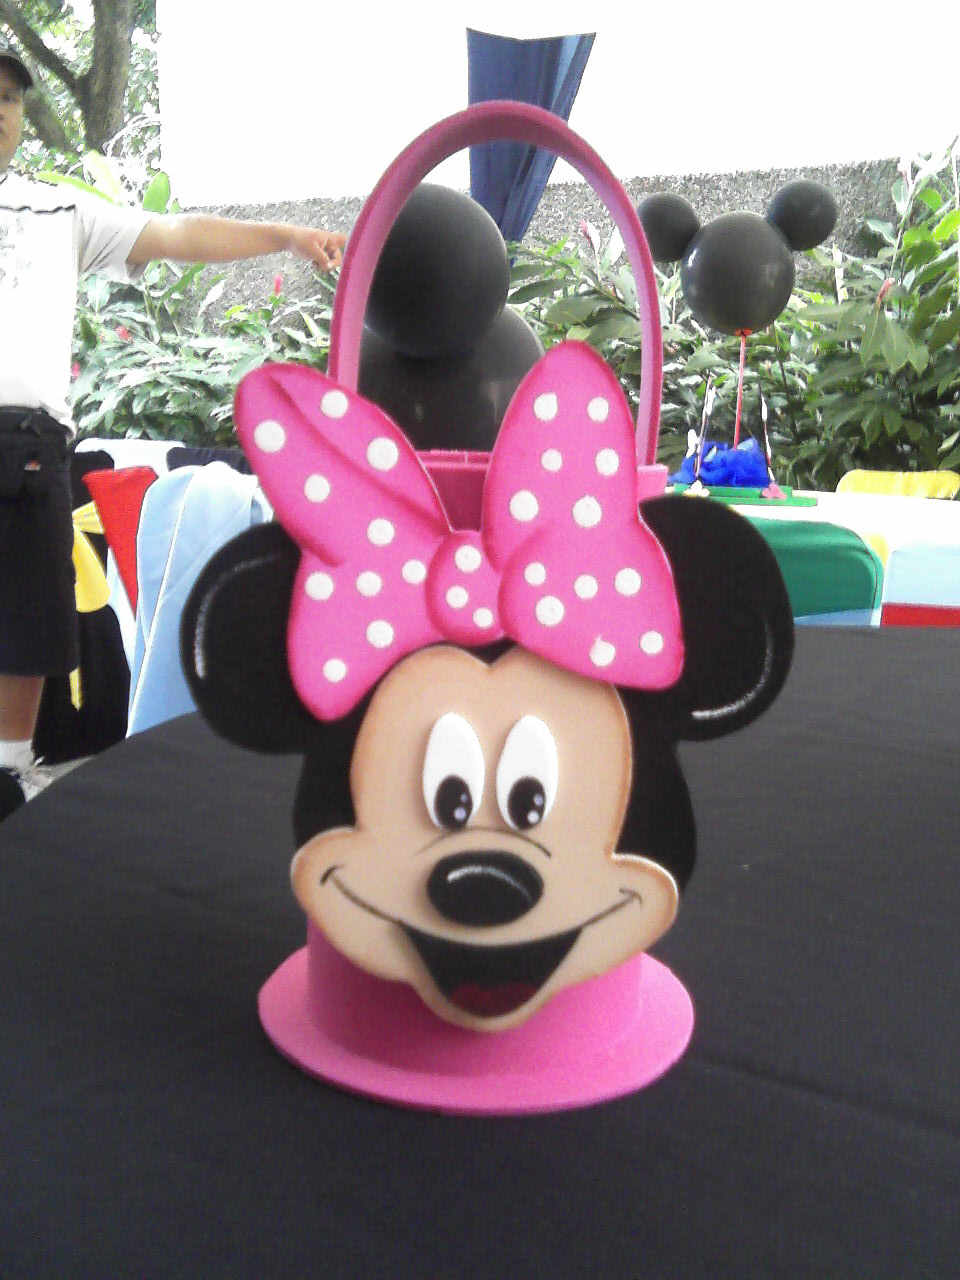 Cotillon+Minnie+-+La+casa+de+Mickey.jpg